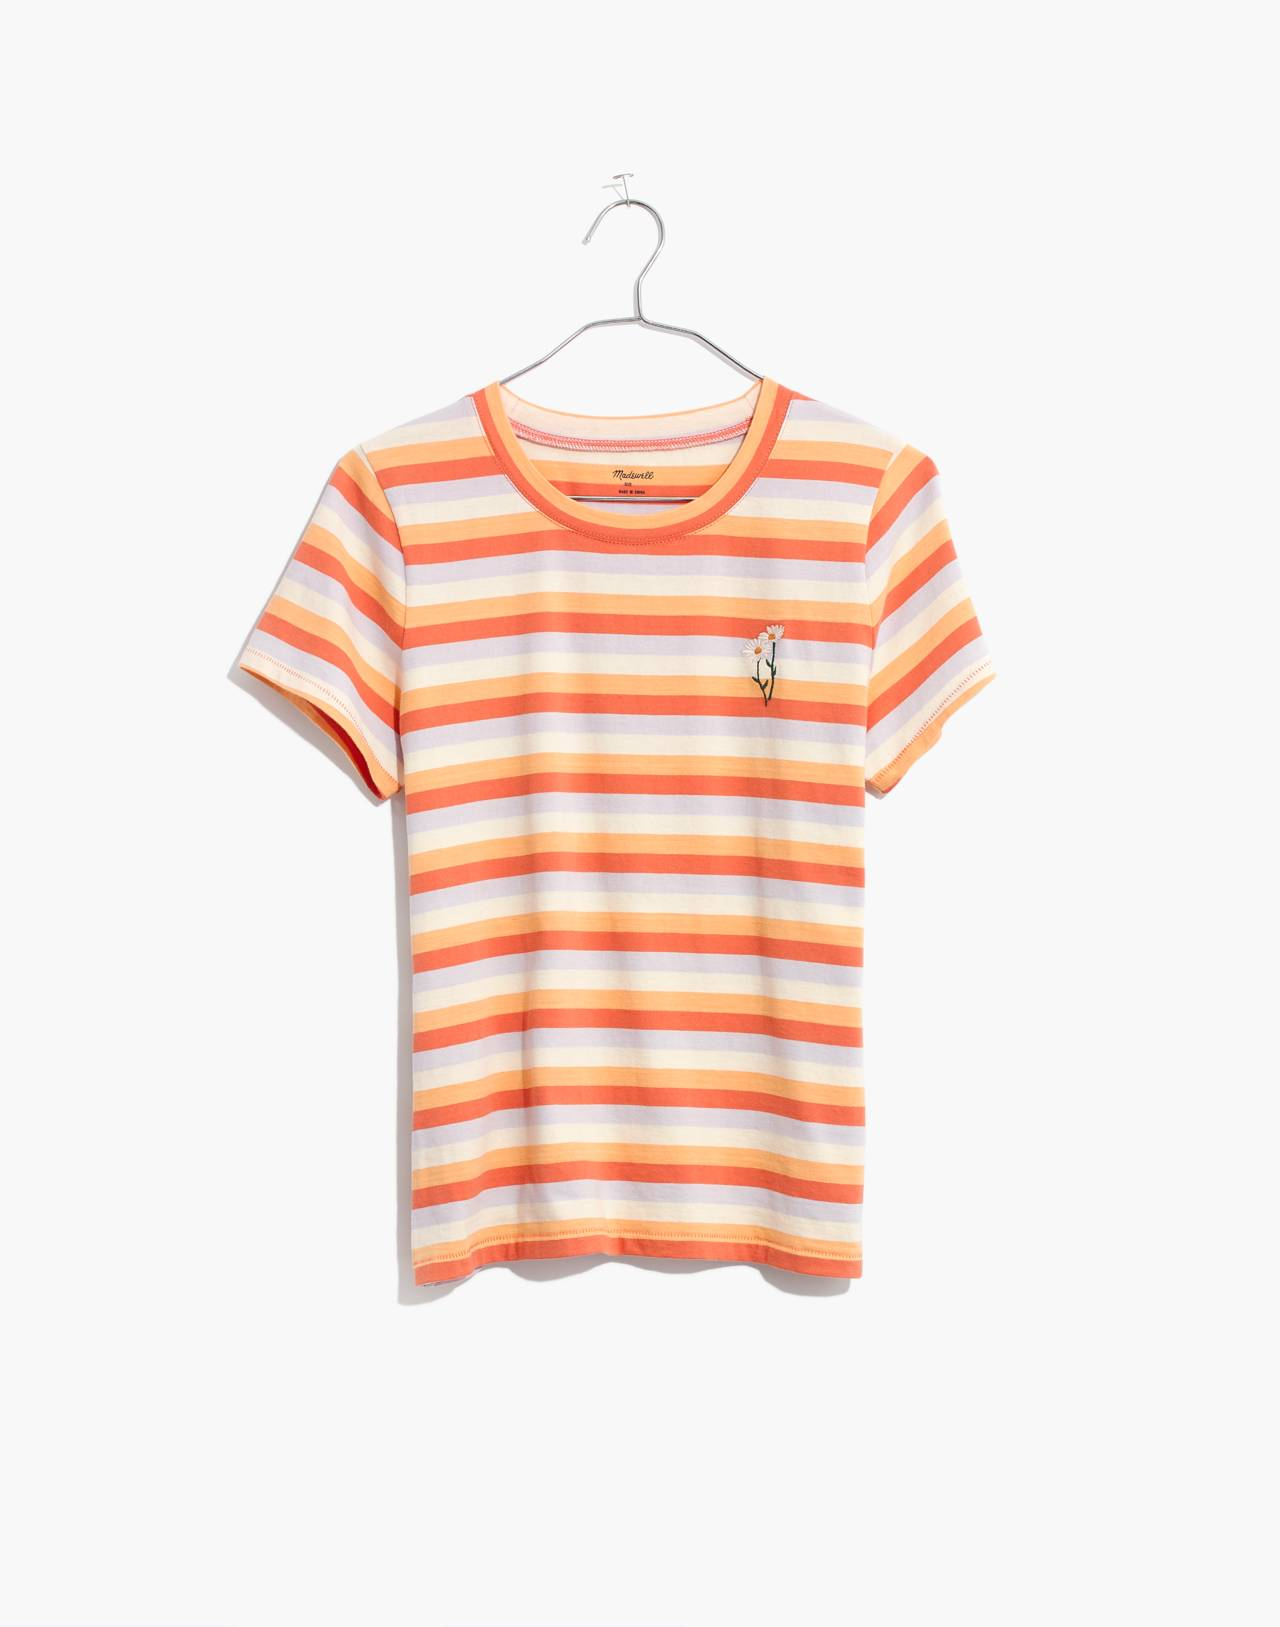 Daisy Embroidered Northside Vintage Tee in Broadway Stripe in peach daisy emb image 4